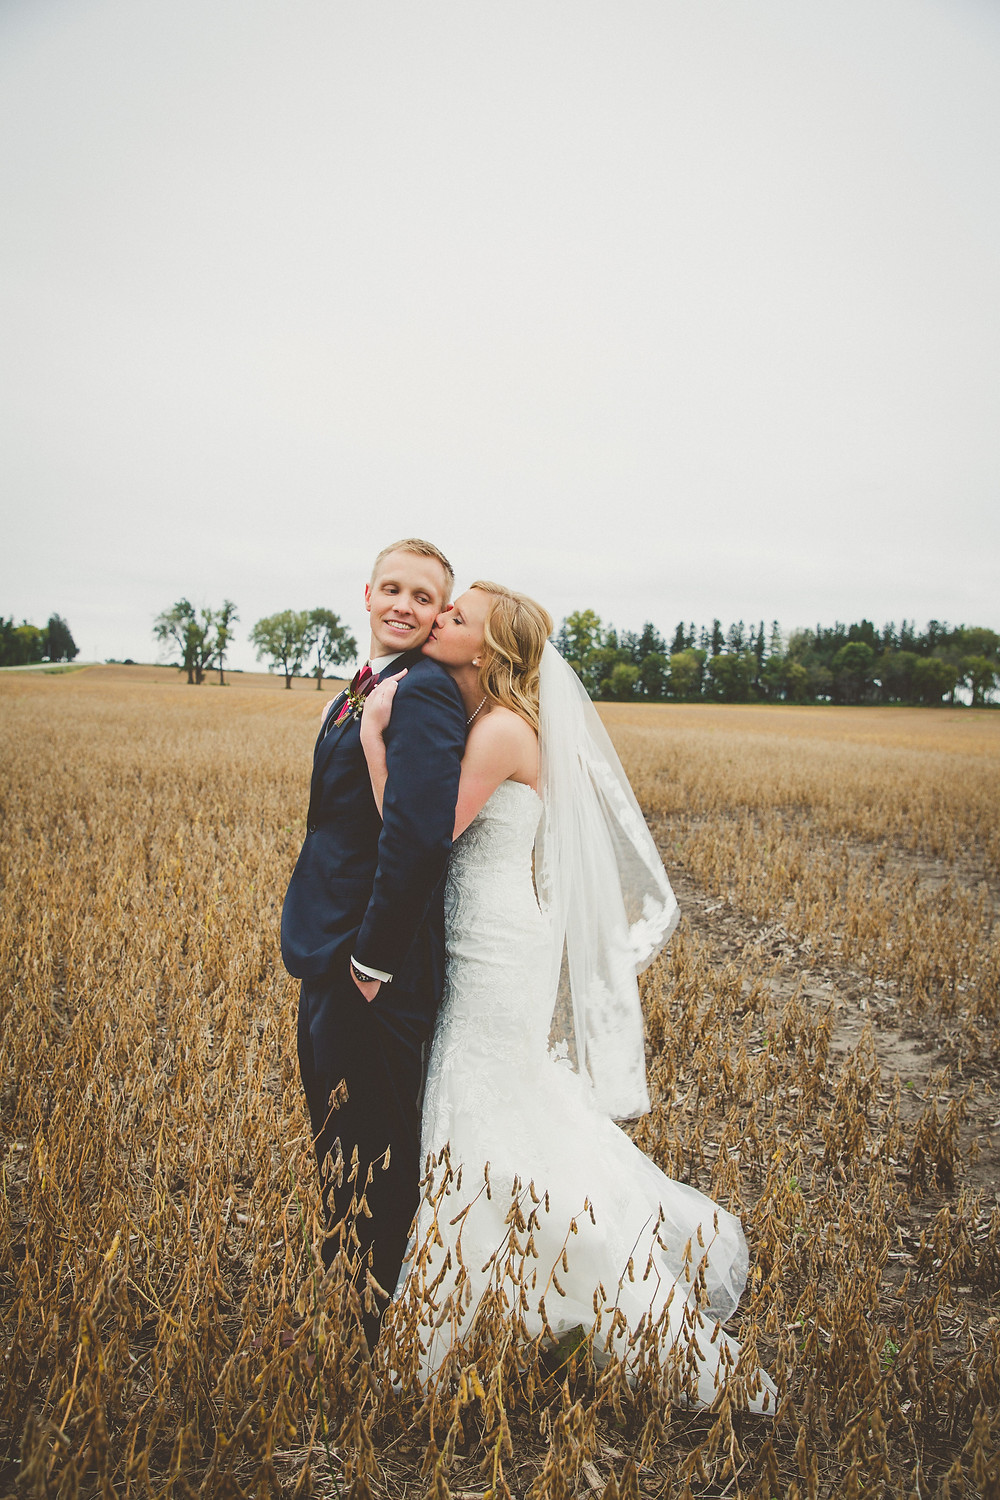 Beautiful bride and groom in a field on their wedding day.